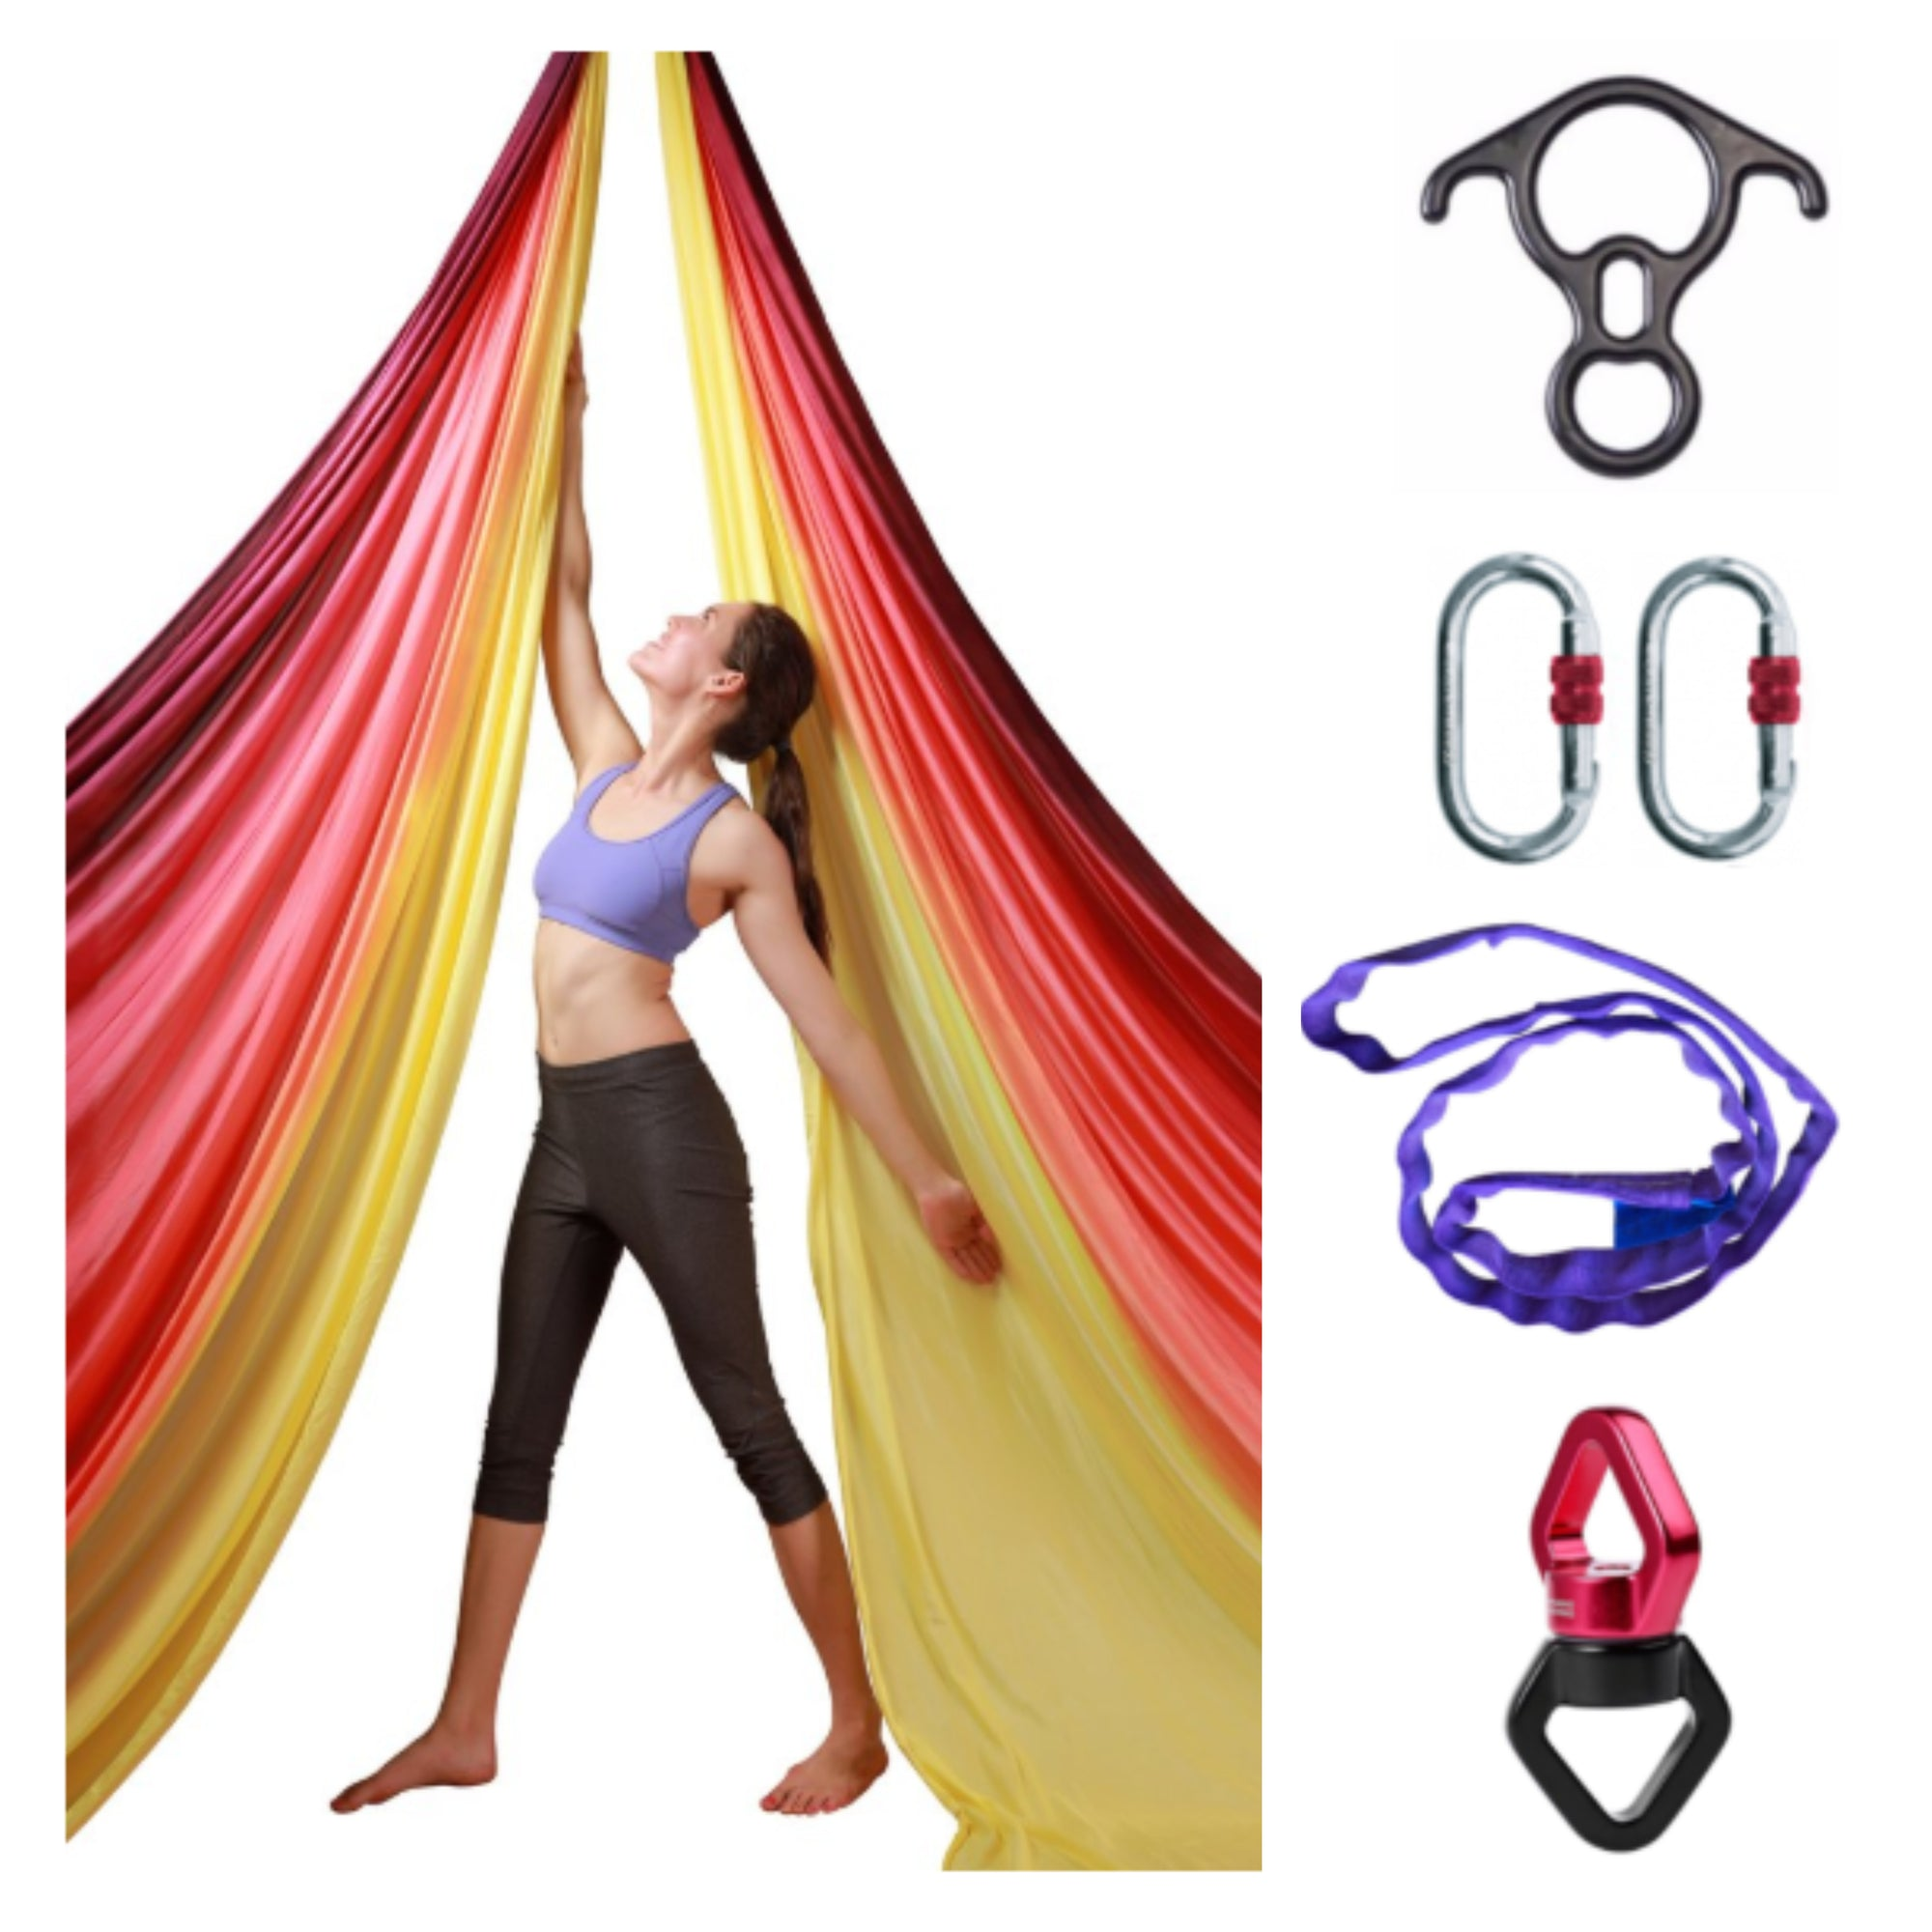 Sunset Ombre Aerial Silks Set with All Hardware - Uplift Active